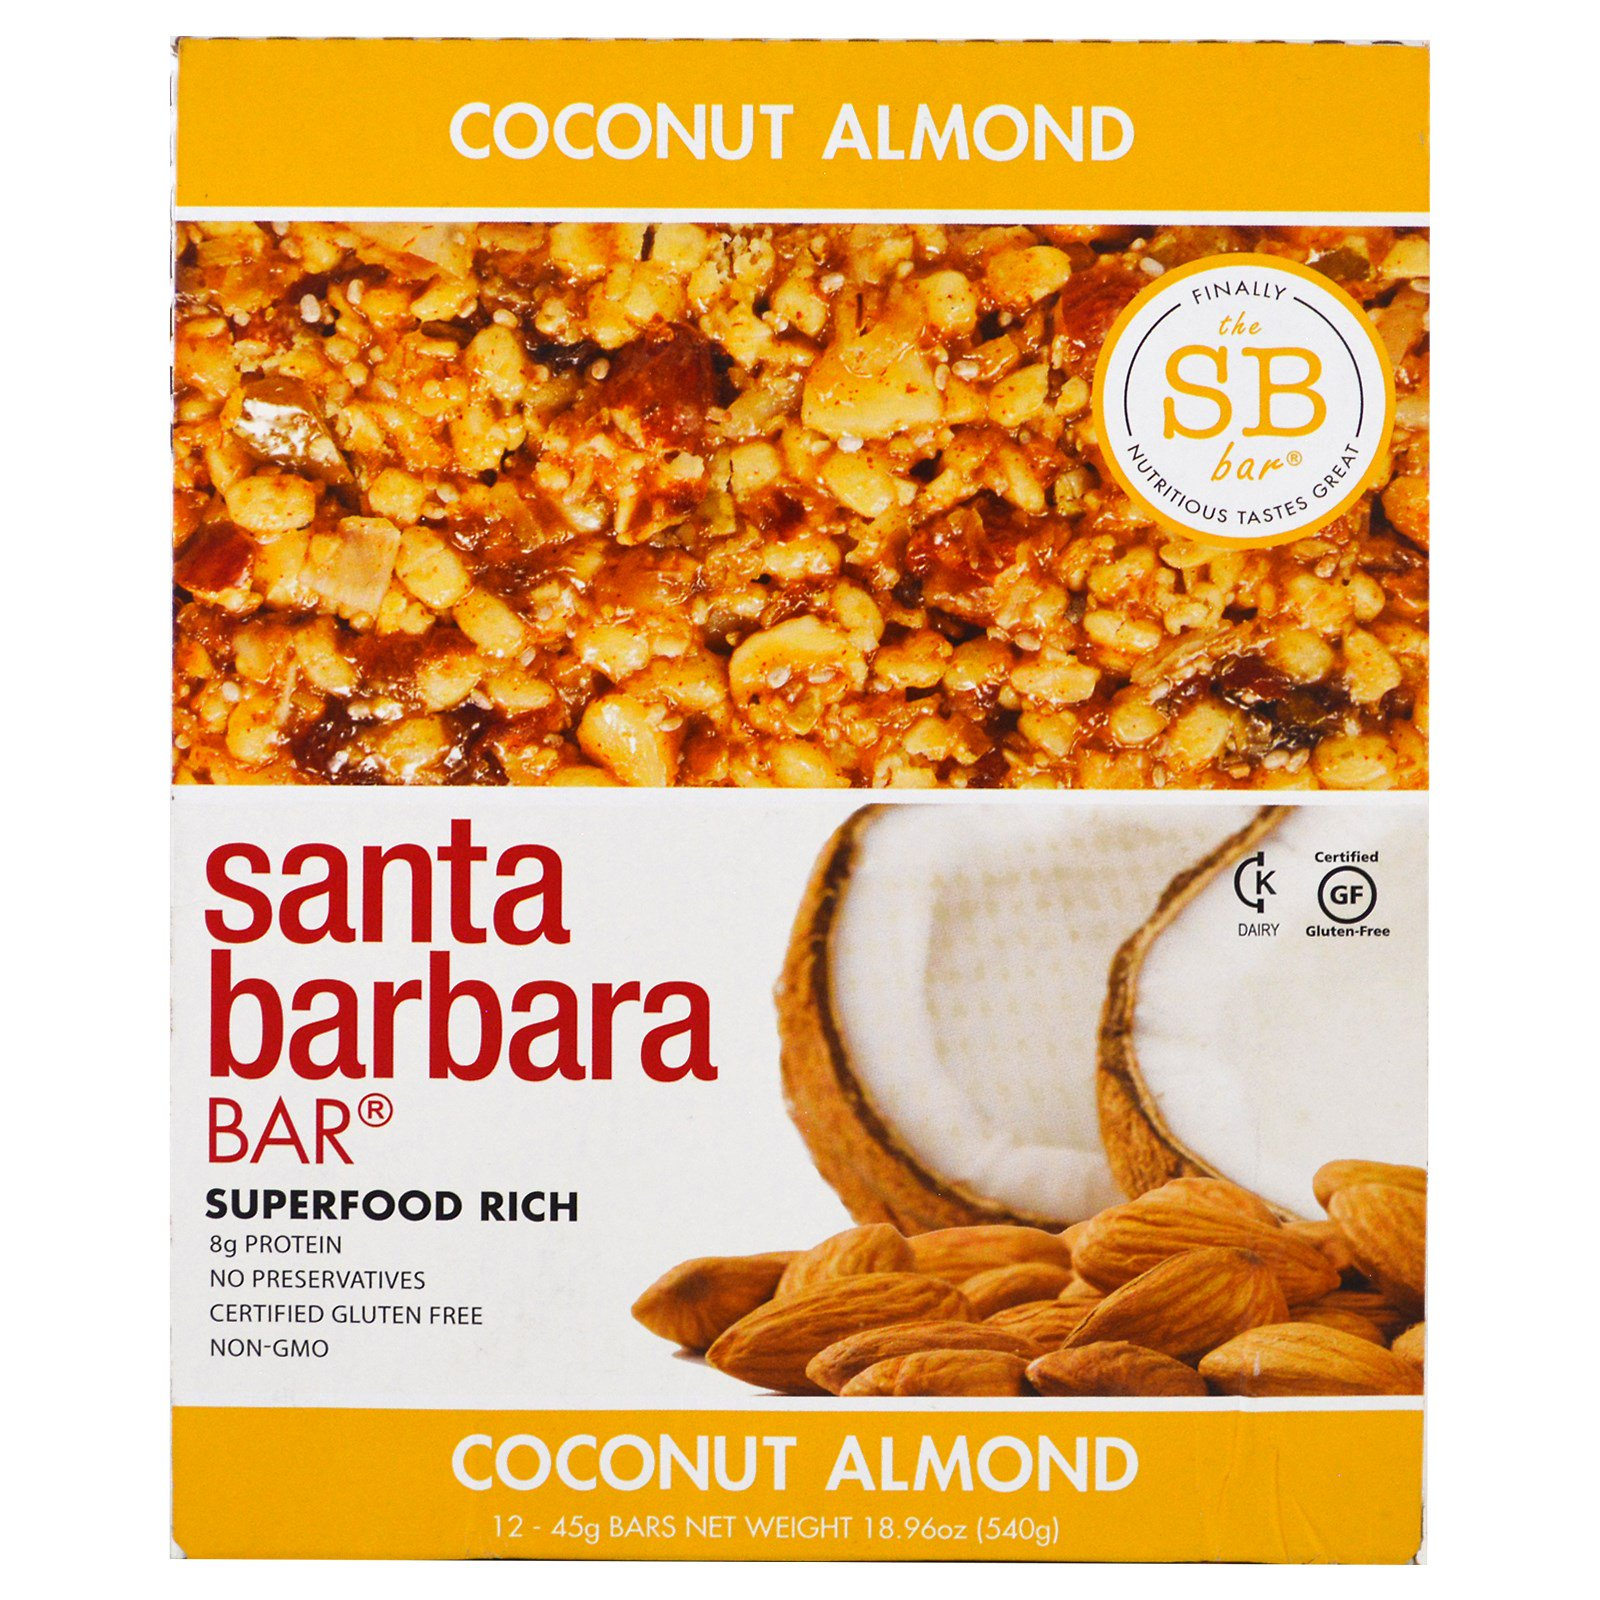 Santa Barbara Bar, Coconut Almond, 12 Bars, 18.96 oz (540 g)